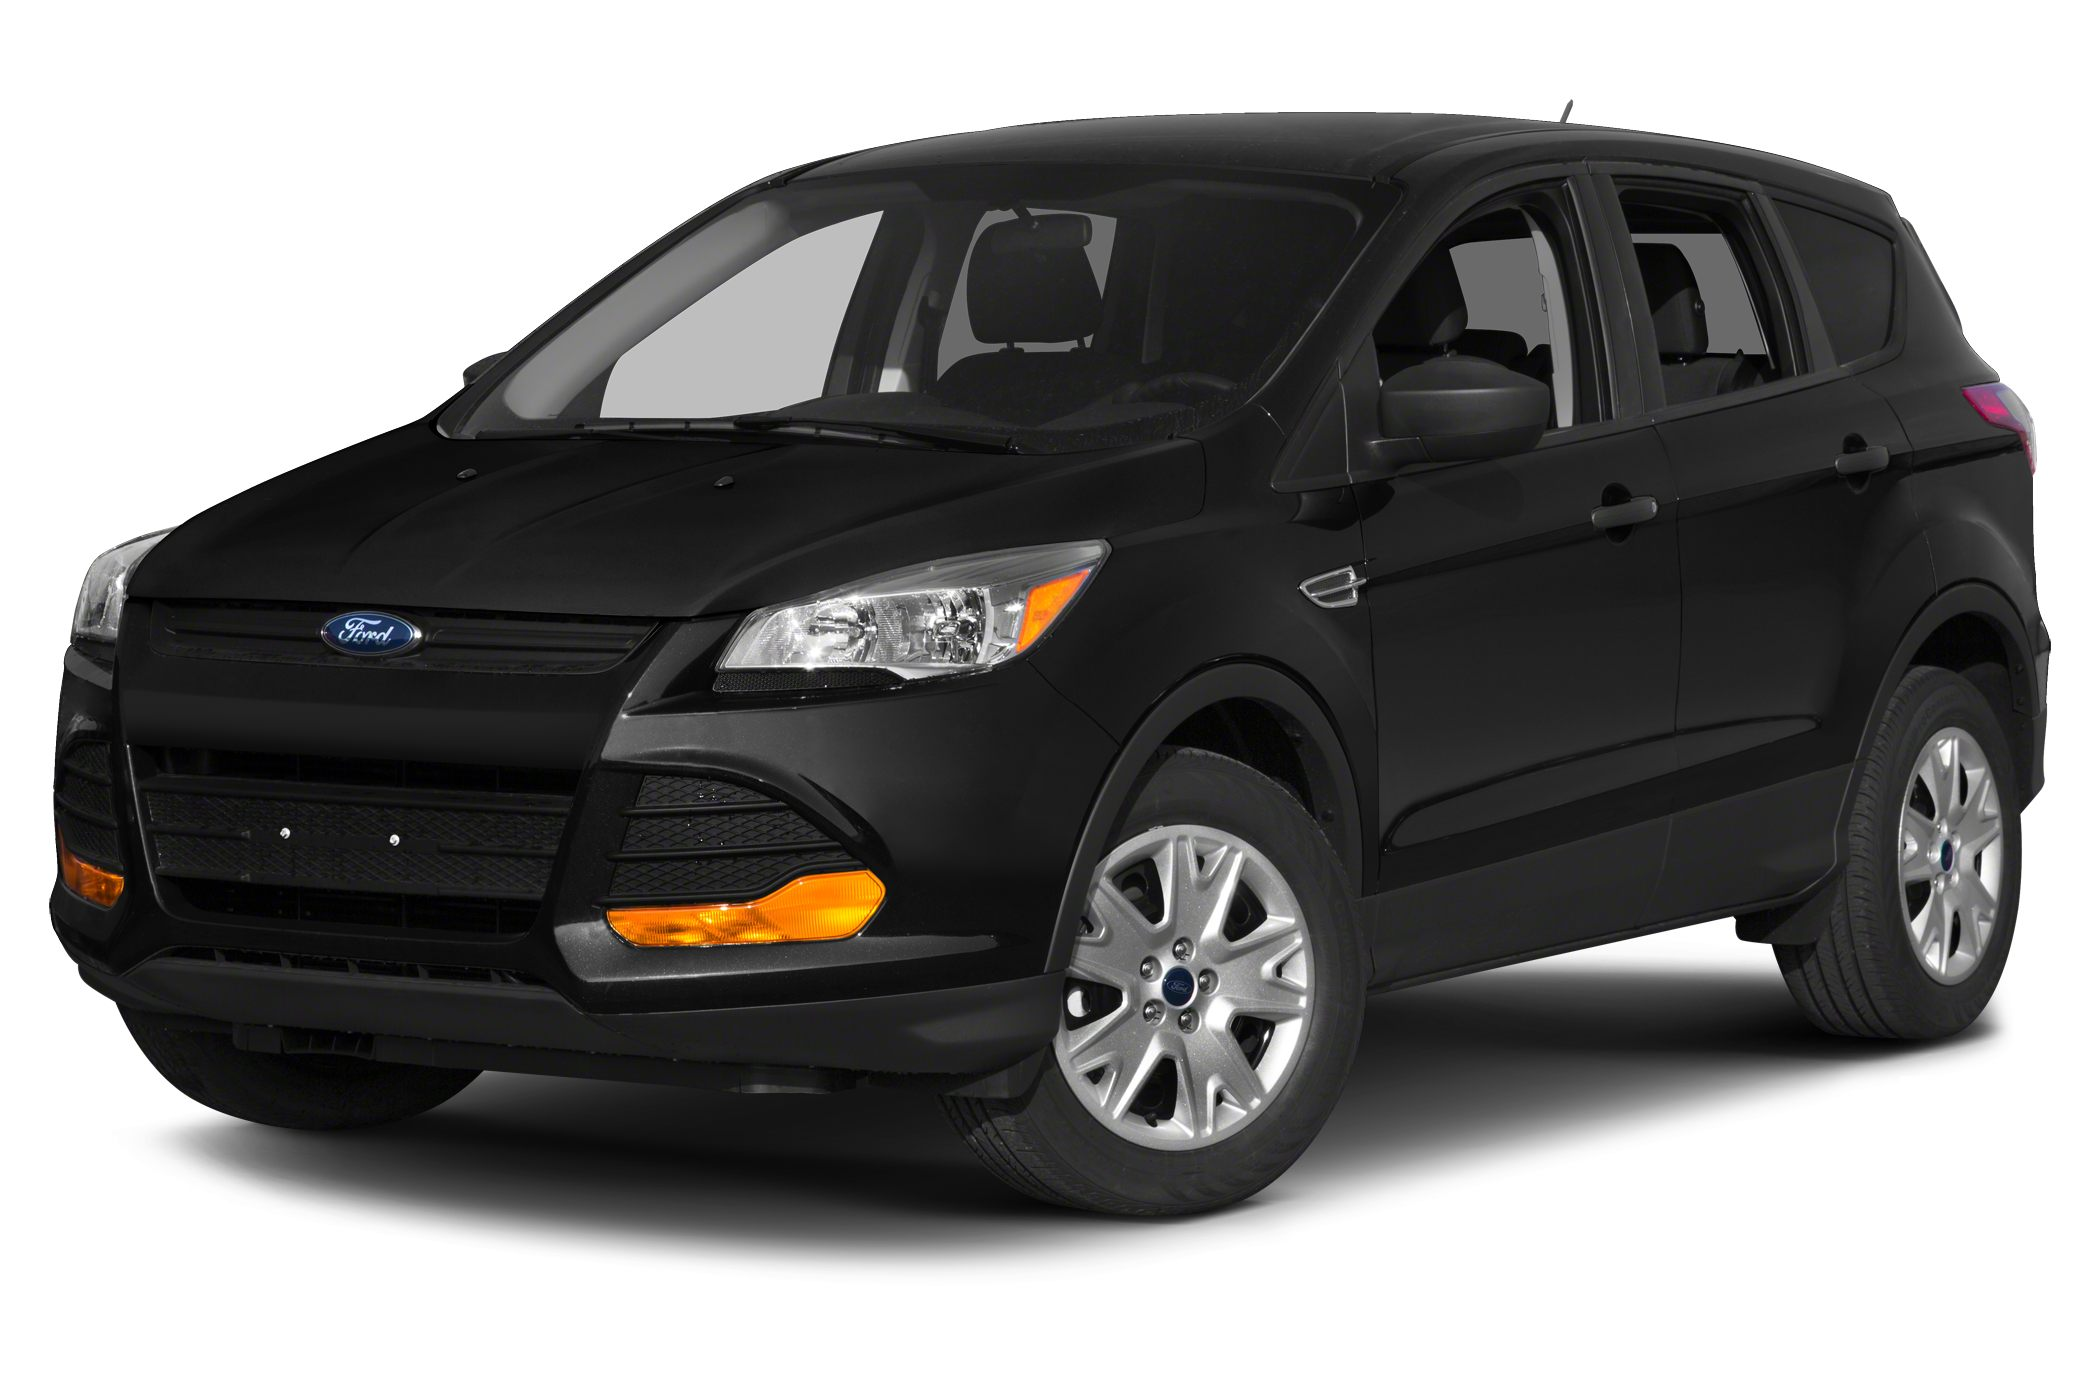 2014 Ford Escape SE SUV for sale in Nazareth for $25,977 with 0 miles